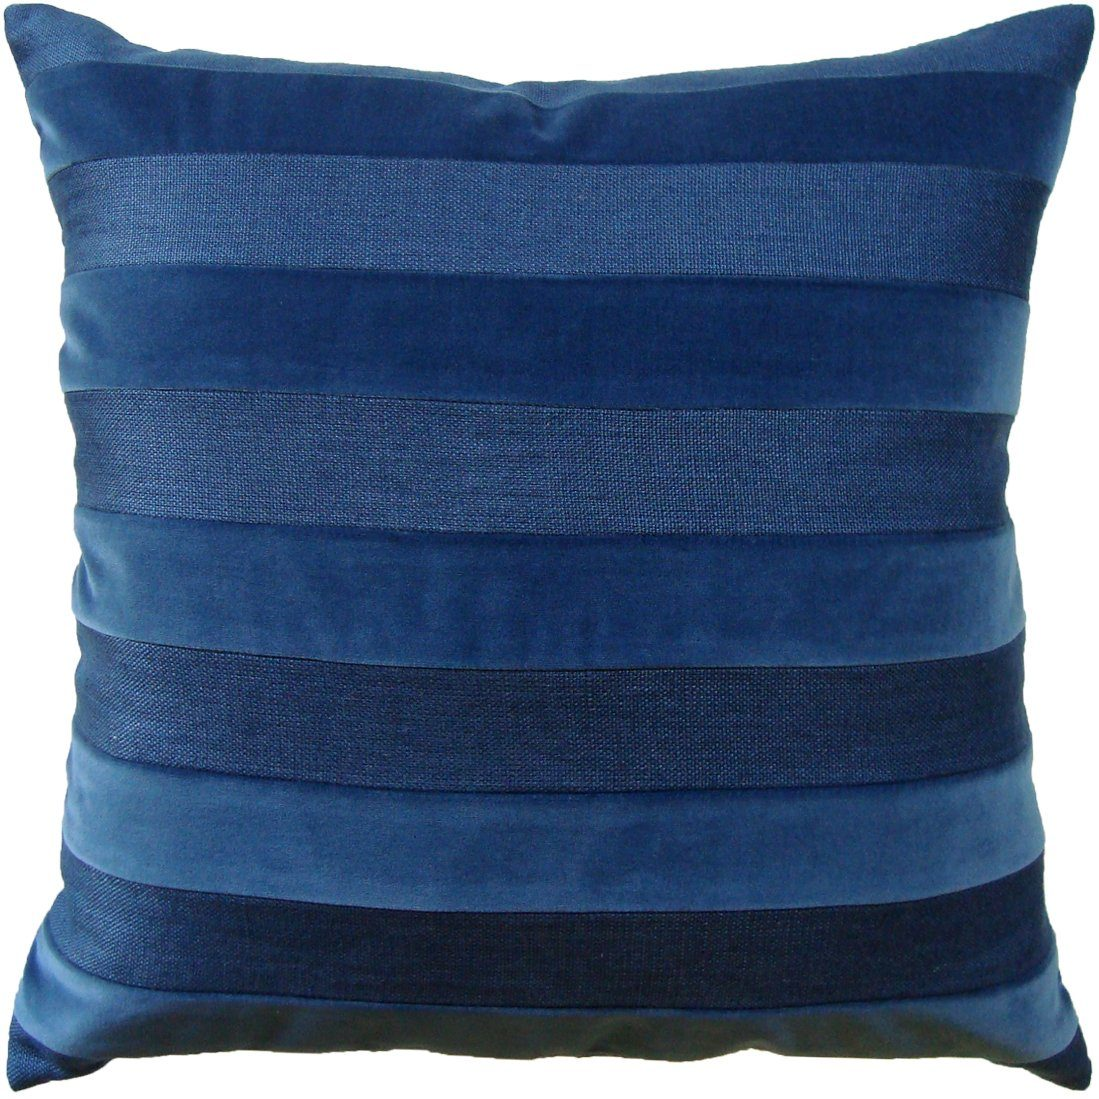 Parker Stripe Marine Pillow | Shop Ryan Studio Pillows at Fig Linens